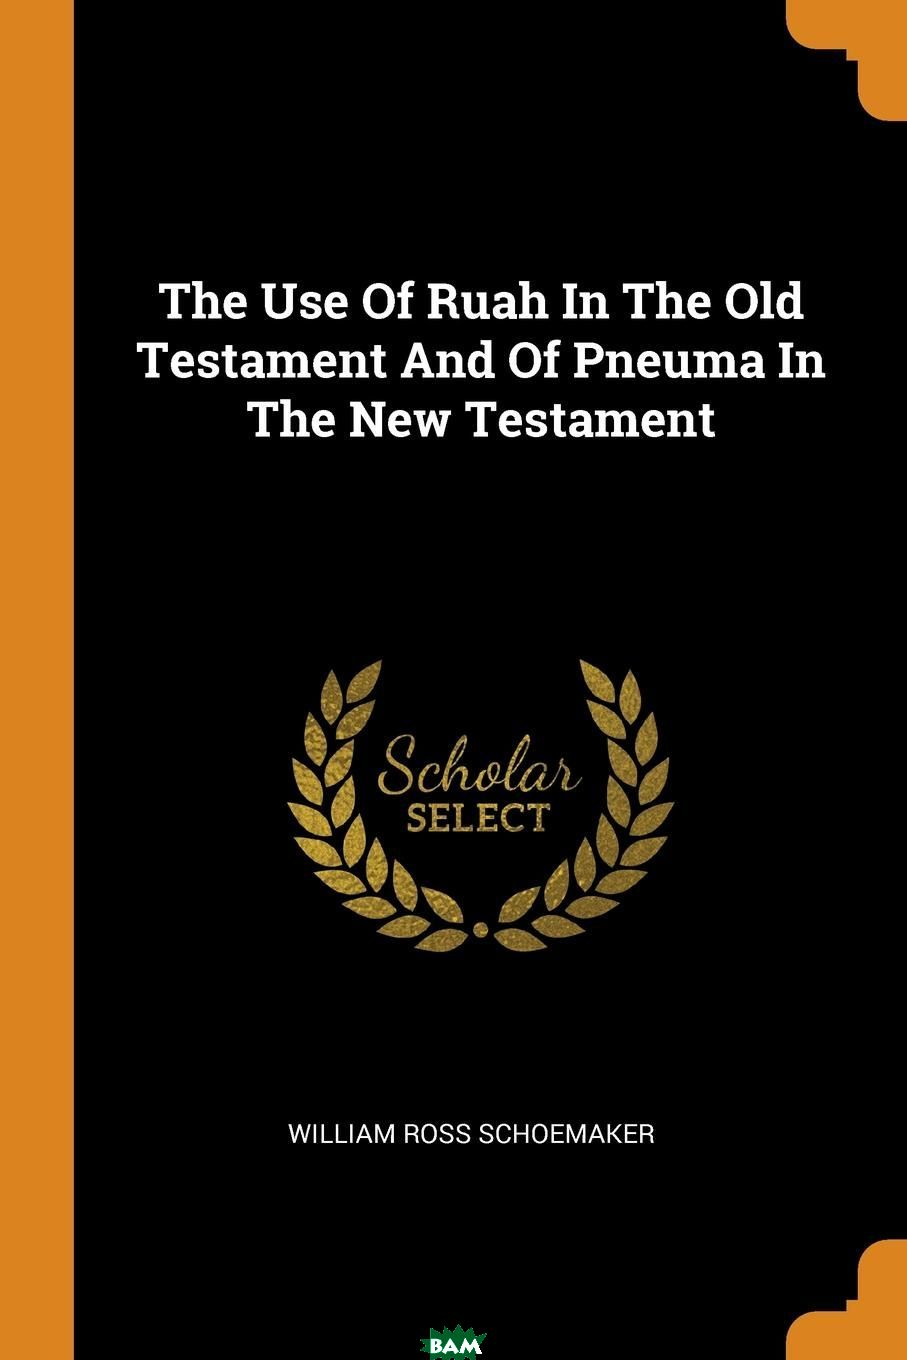 Купить The Use Of Ruah In The Old Testament And Of Pneuma In The New Testament, William Ross Schoemaker, 9780353599949